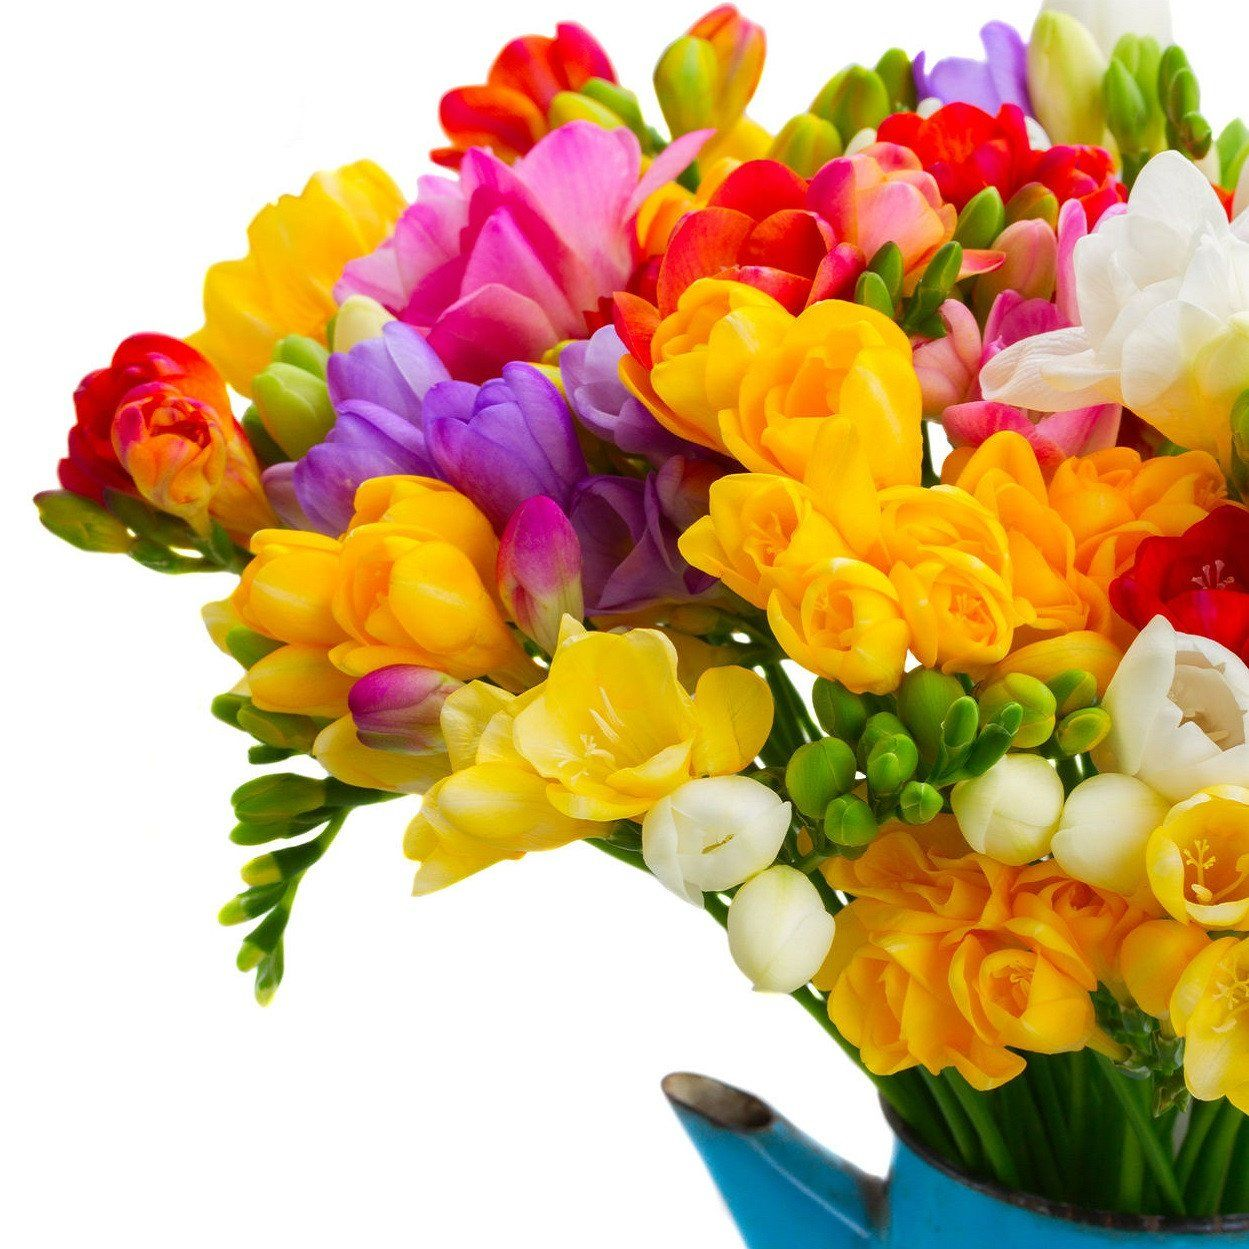 Image Result For Freesia Freesia Flowers Easy To Grow Bulbs Flowers For You